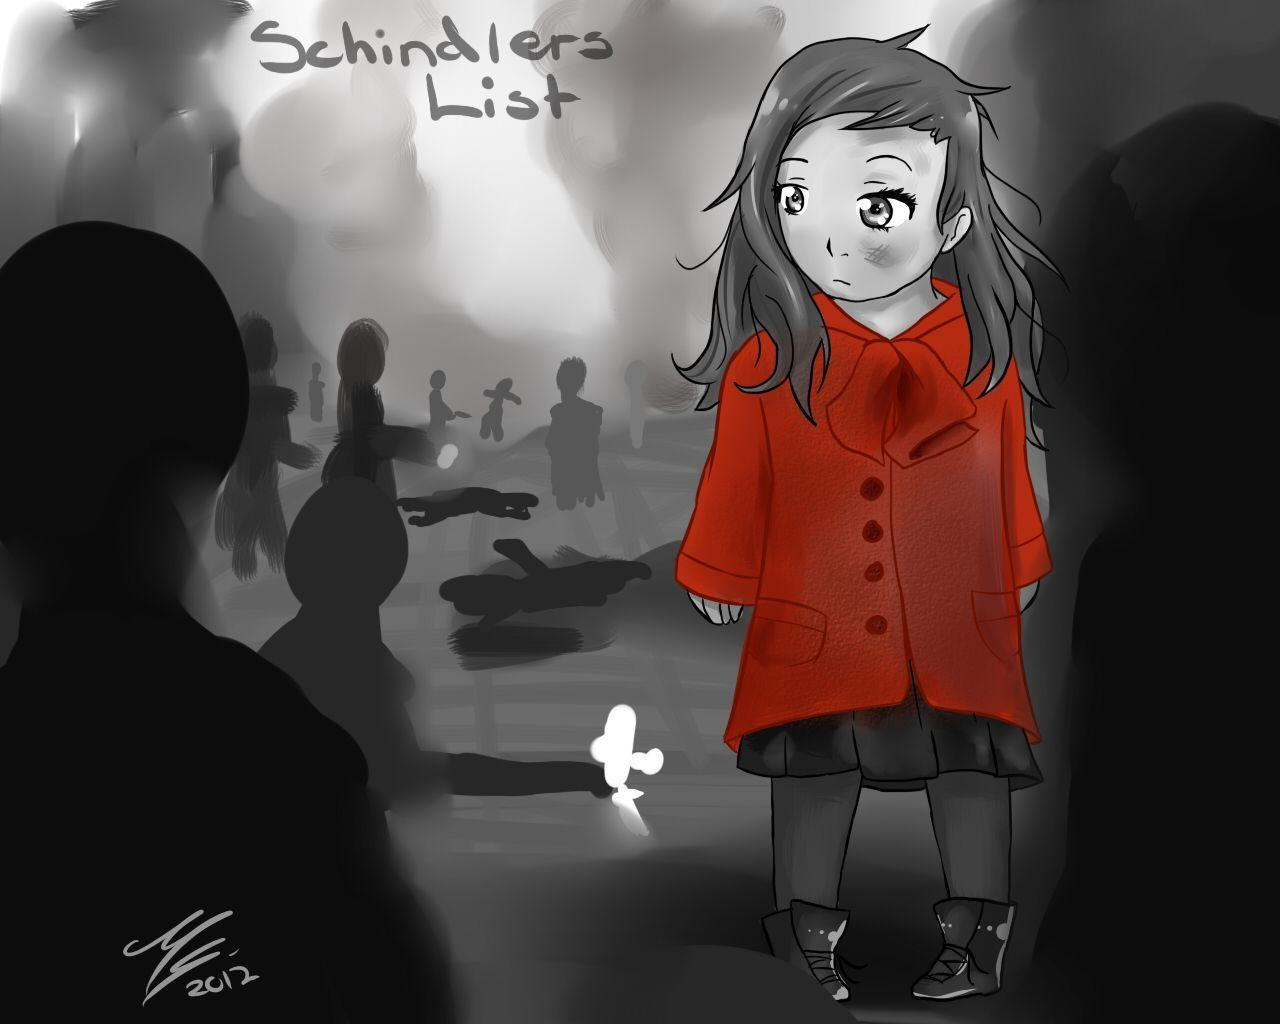 Girl In Red - Schindlers List by Ami-Cat on DeviantArt Schindlers ...